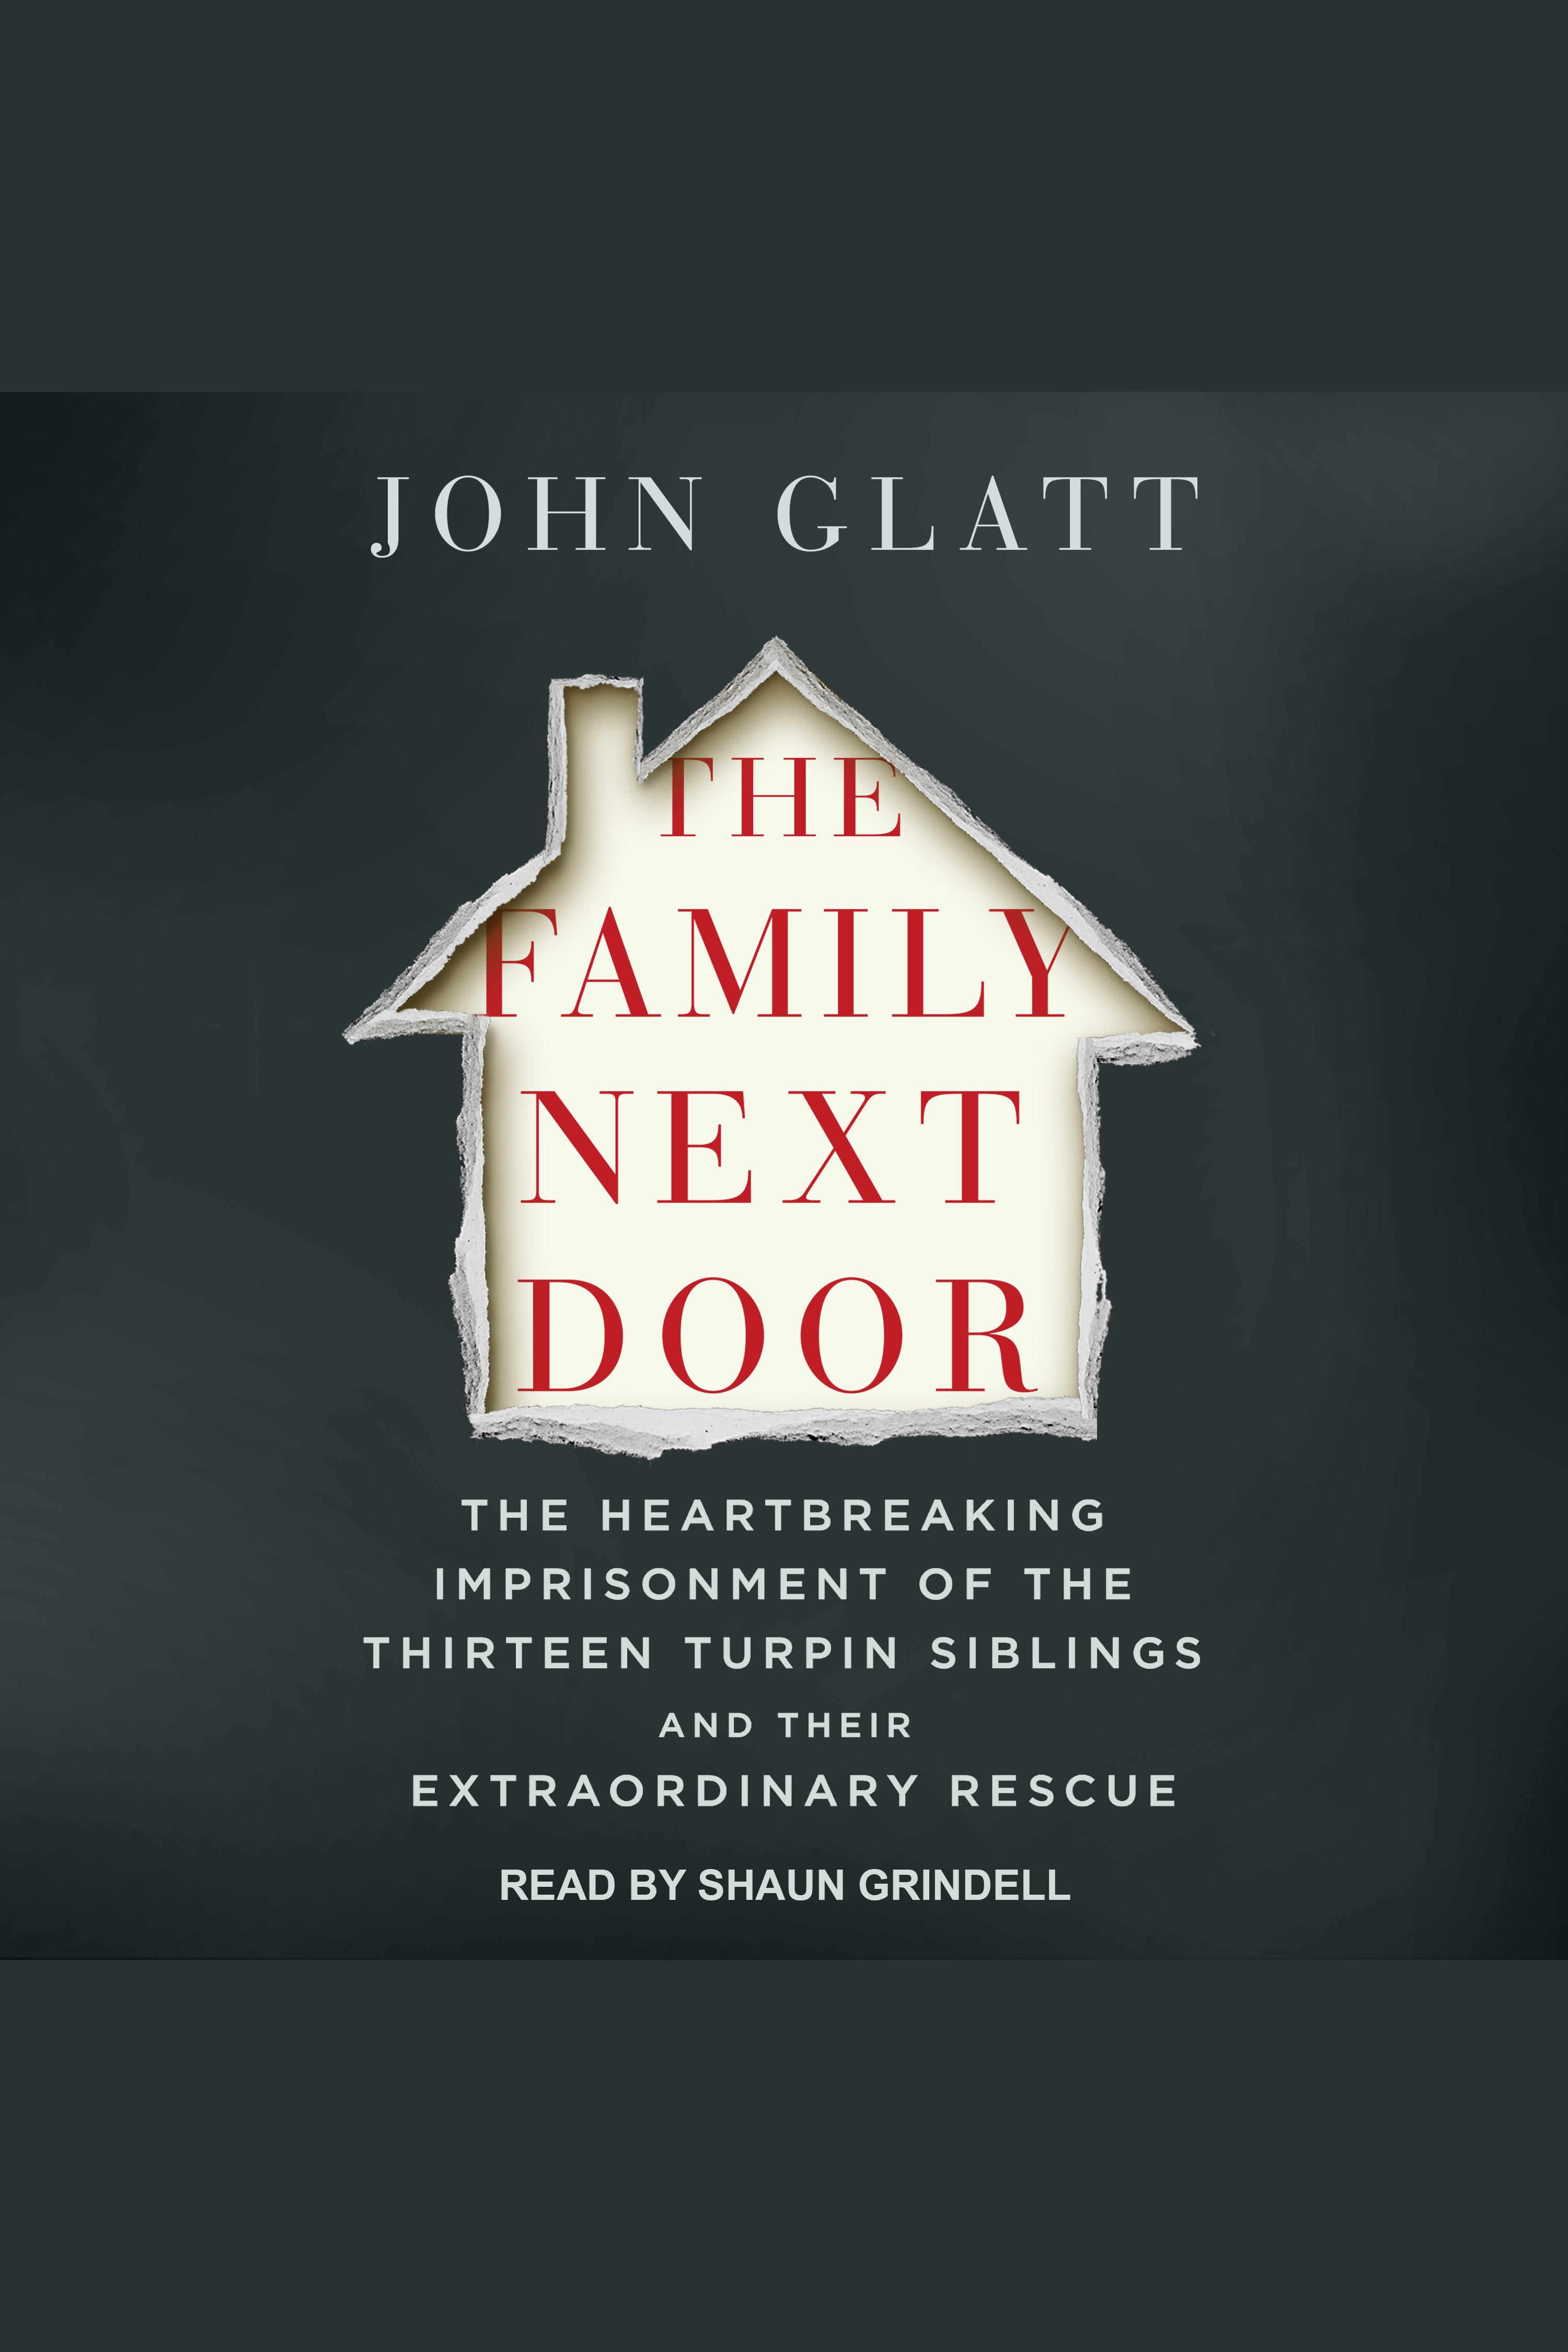 The family next door : the heartbreaking imprisonment of the thirteen Turpin siblings and their extraordinary rescue / [electronic resource]